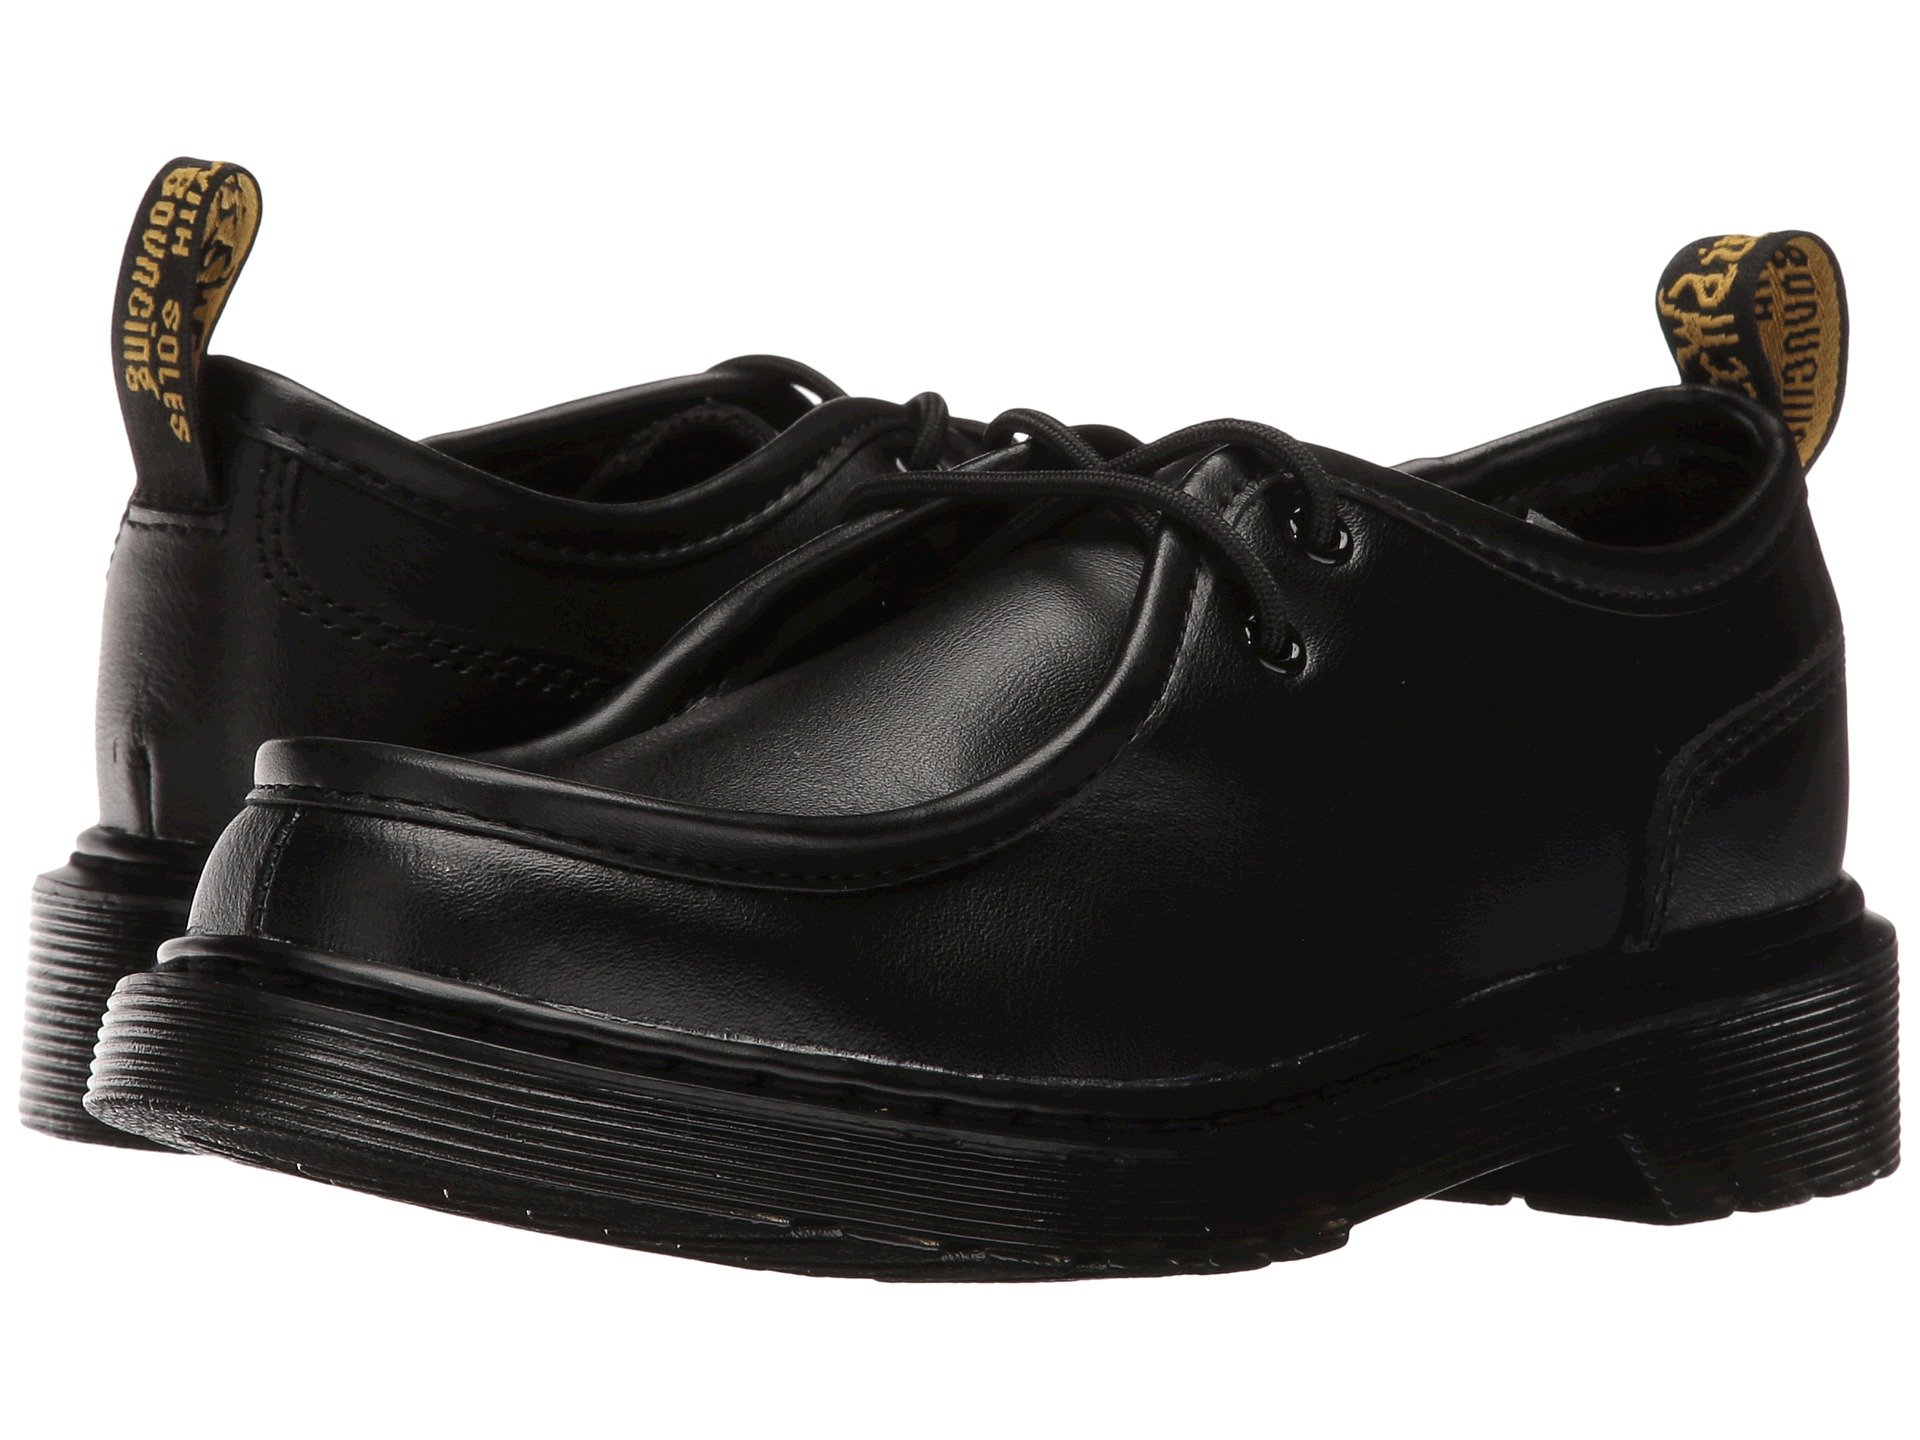 Calzado Casual para Niño Dr. Martens Kid is  Collection Hambleton (Little Kid/Big Kid)  + Dr. Martens en VeoyCompro.net